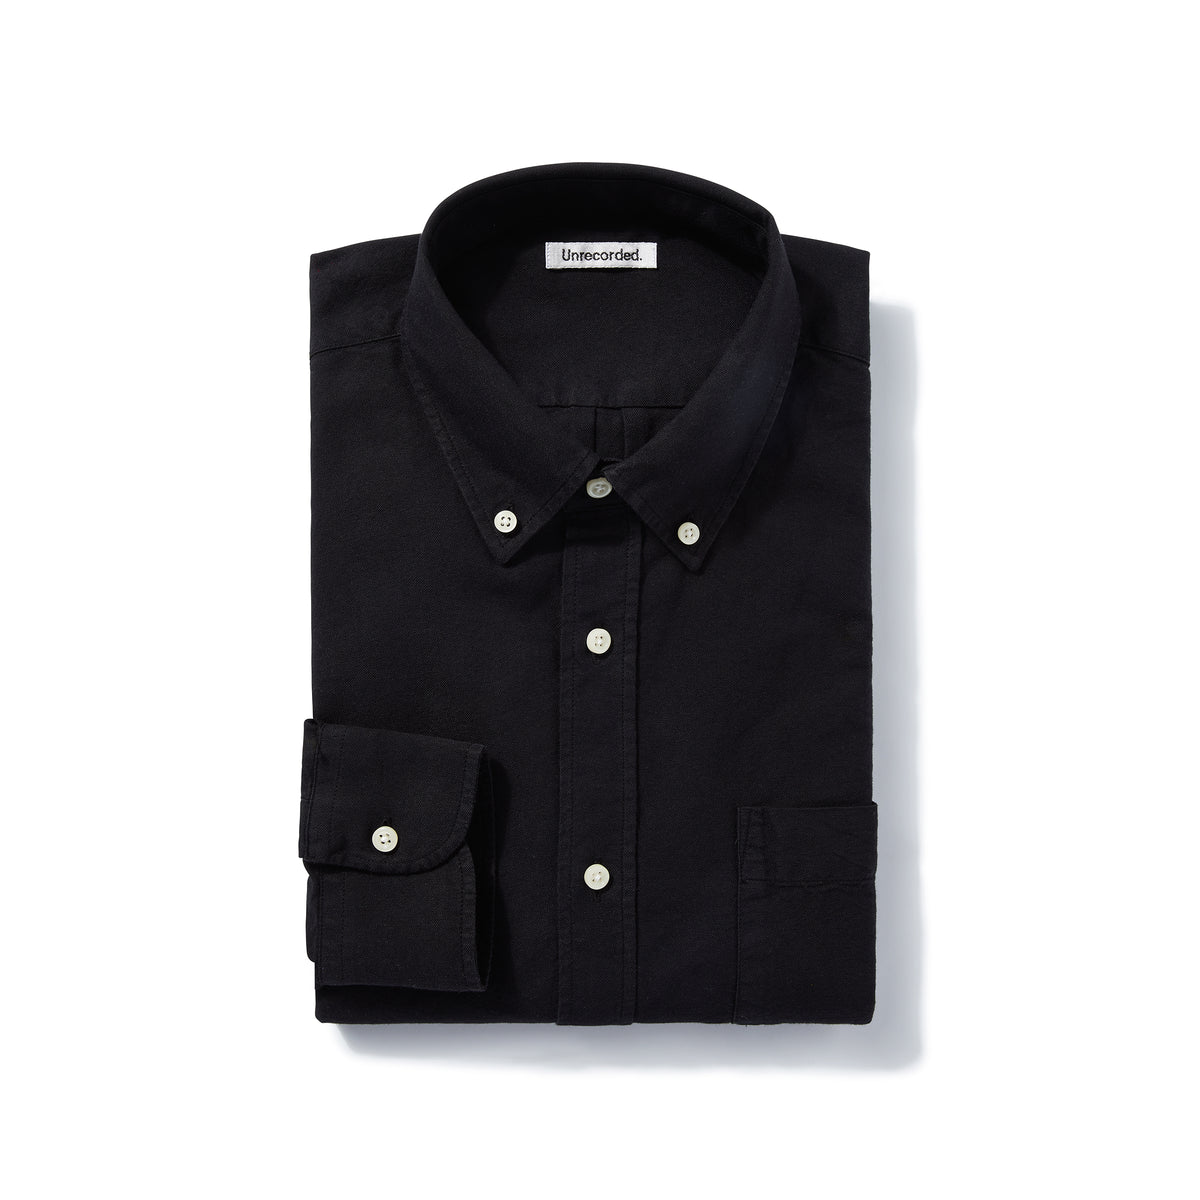 Oxford Shirt Black - Unrecorded